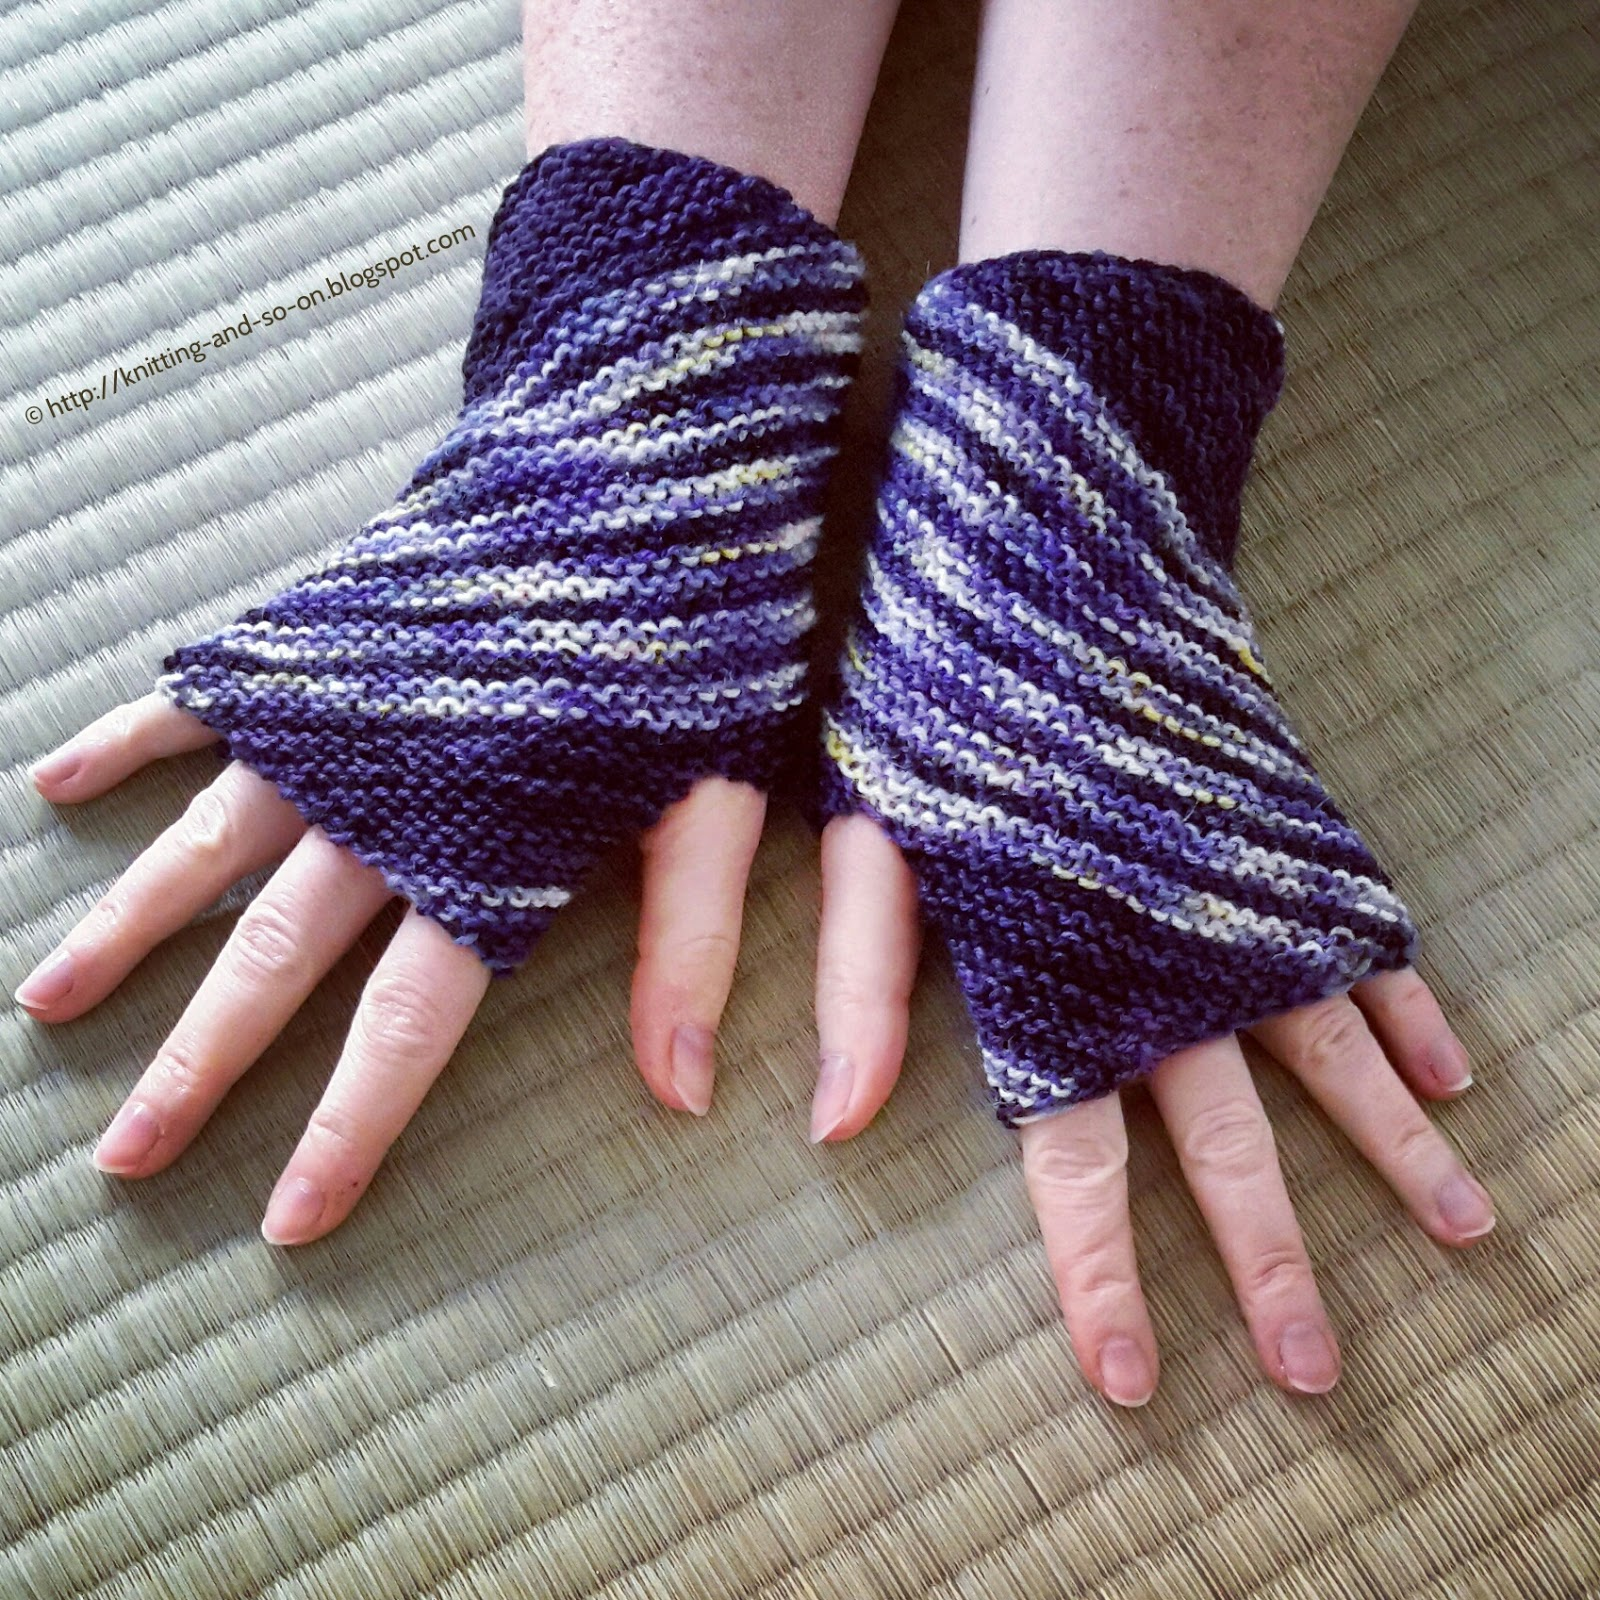 Wrist Warmers Knitting Pattern : Knitting and so on: Inclination Wrist Warmers